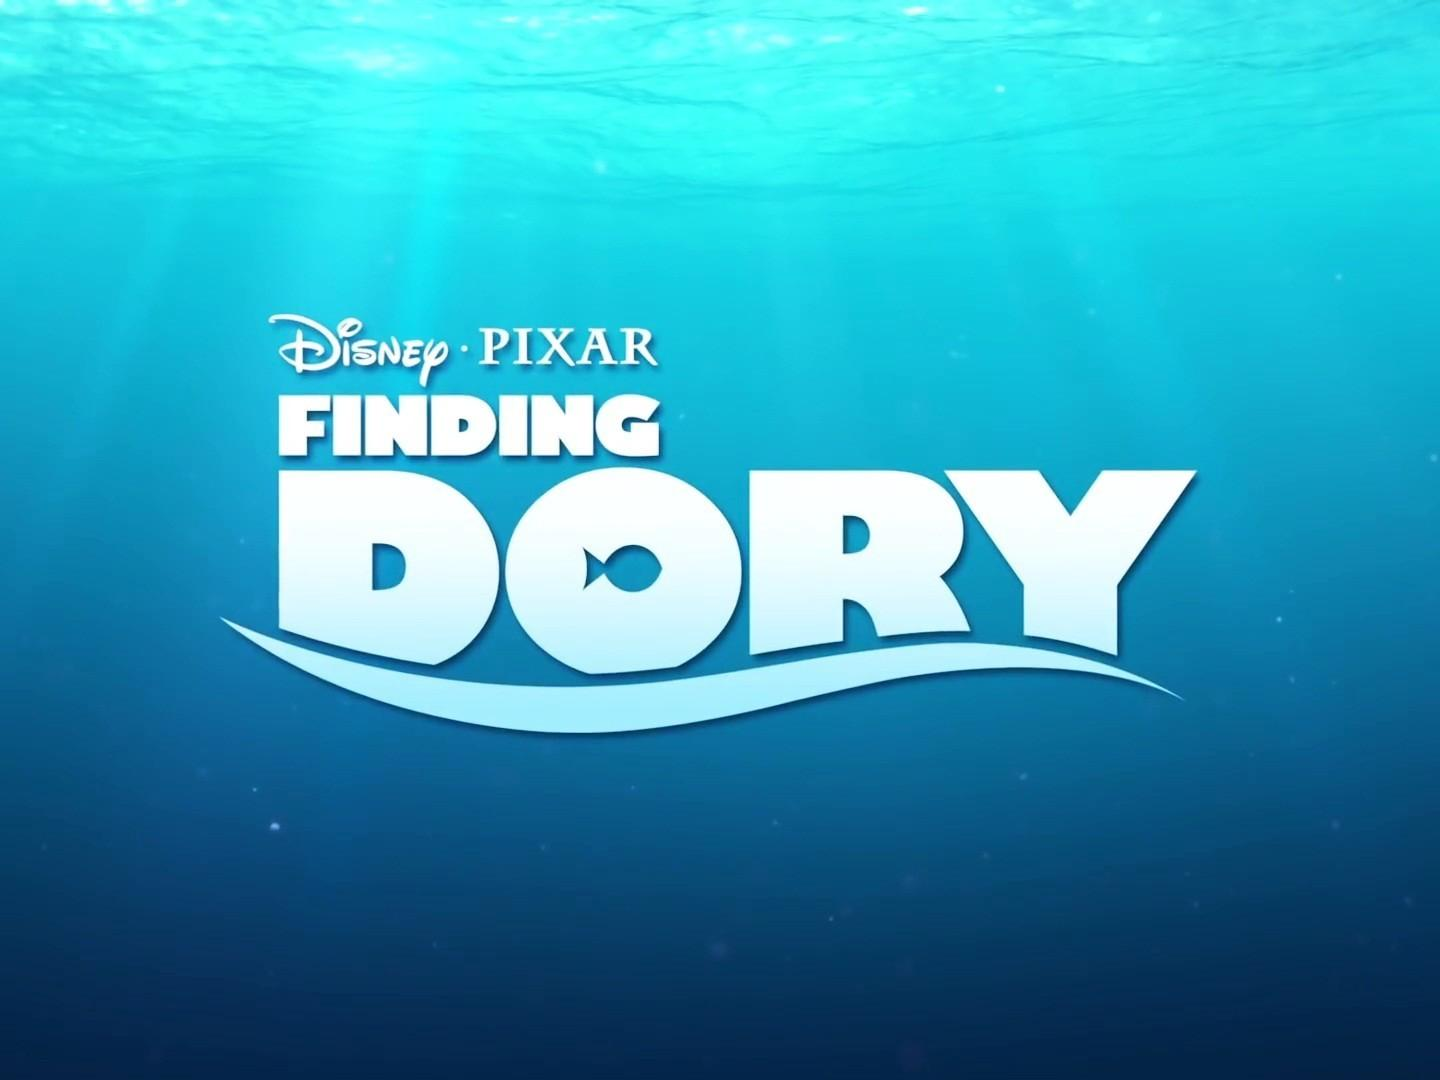 1440x1080 Finding Dory Poster 1440x1080 Resolution HD 4k Wallpapers